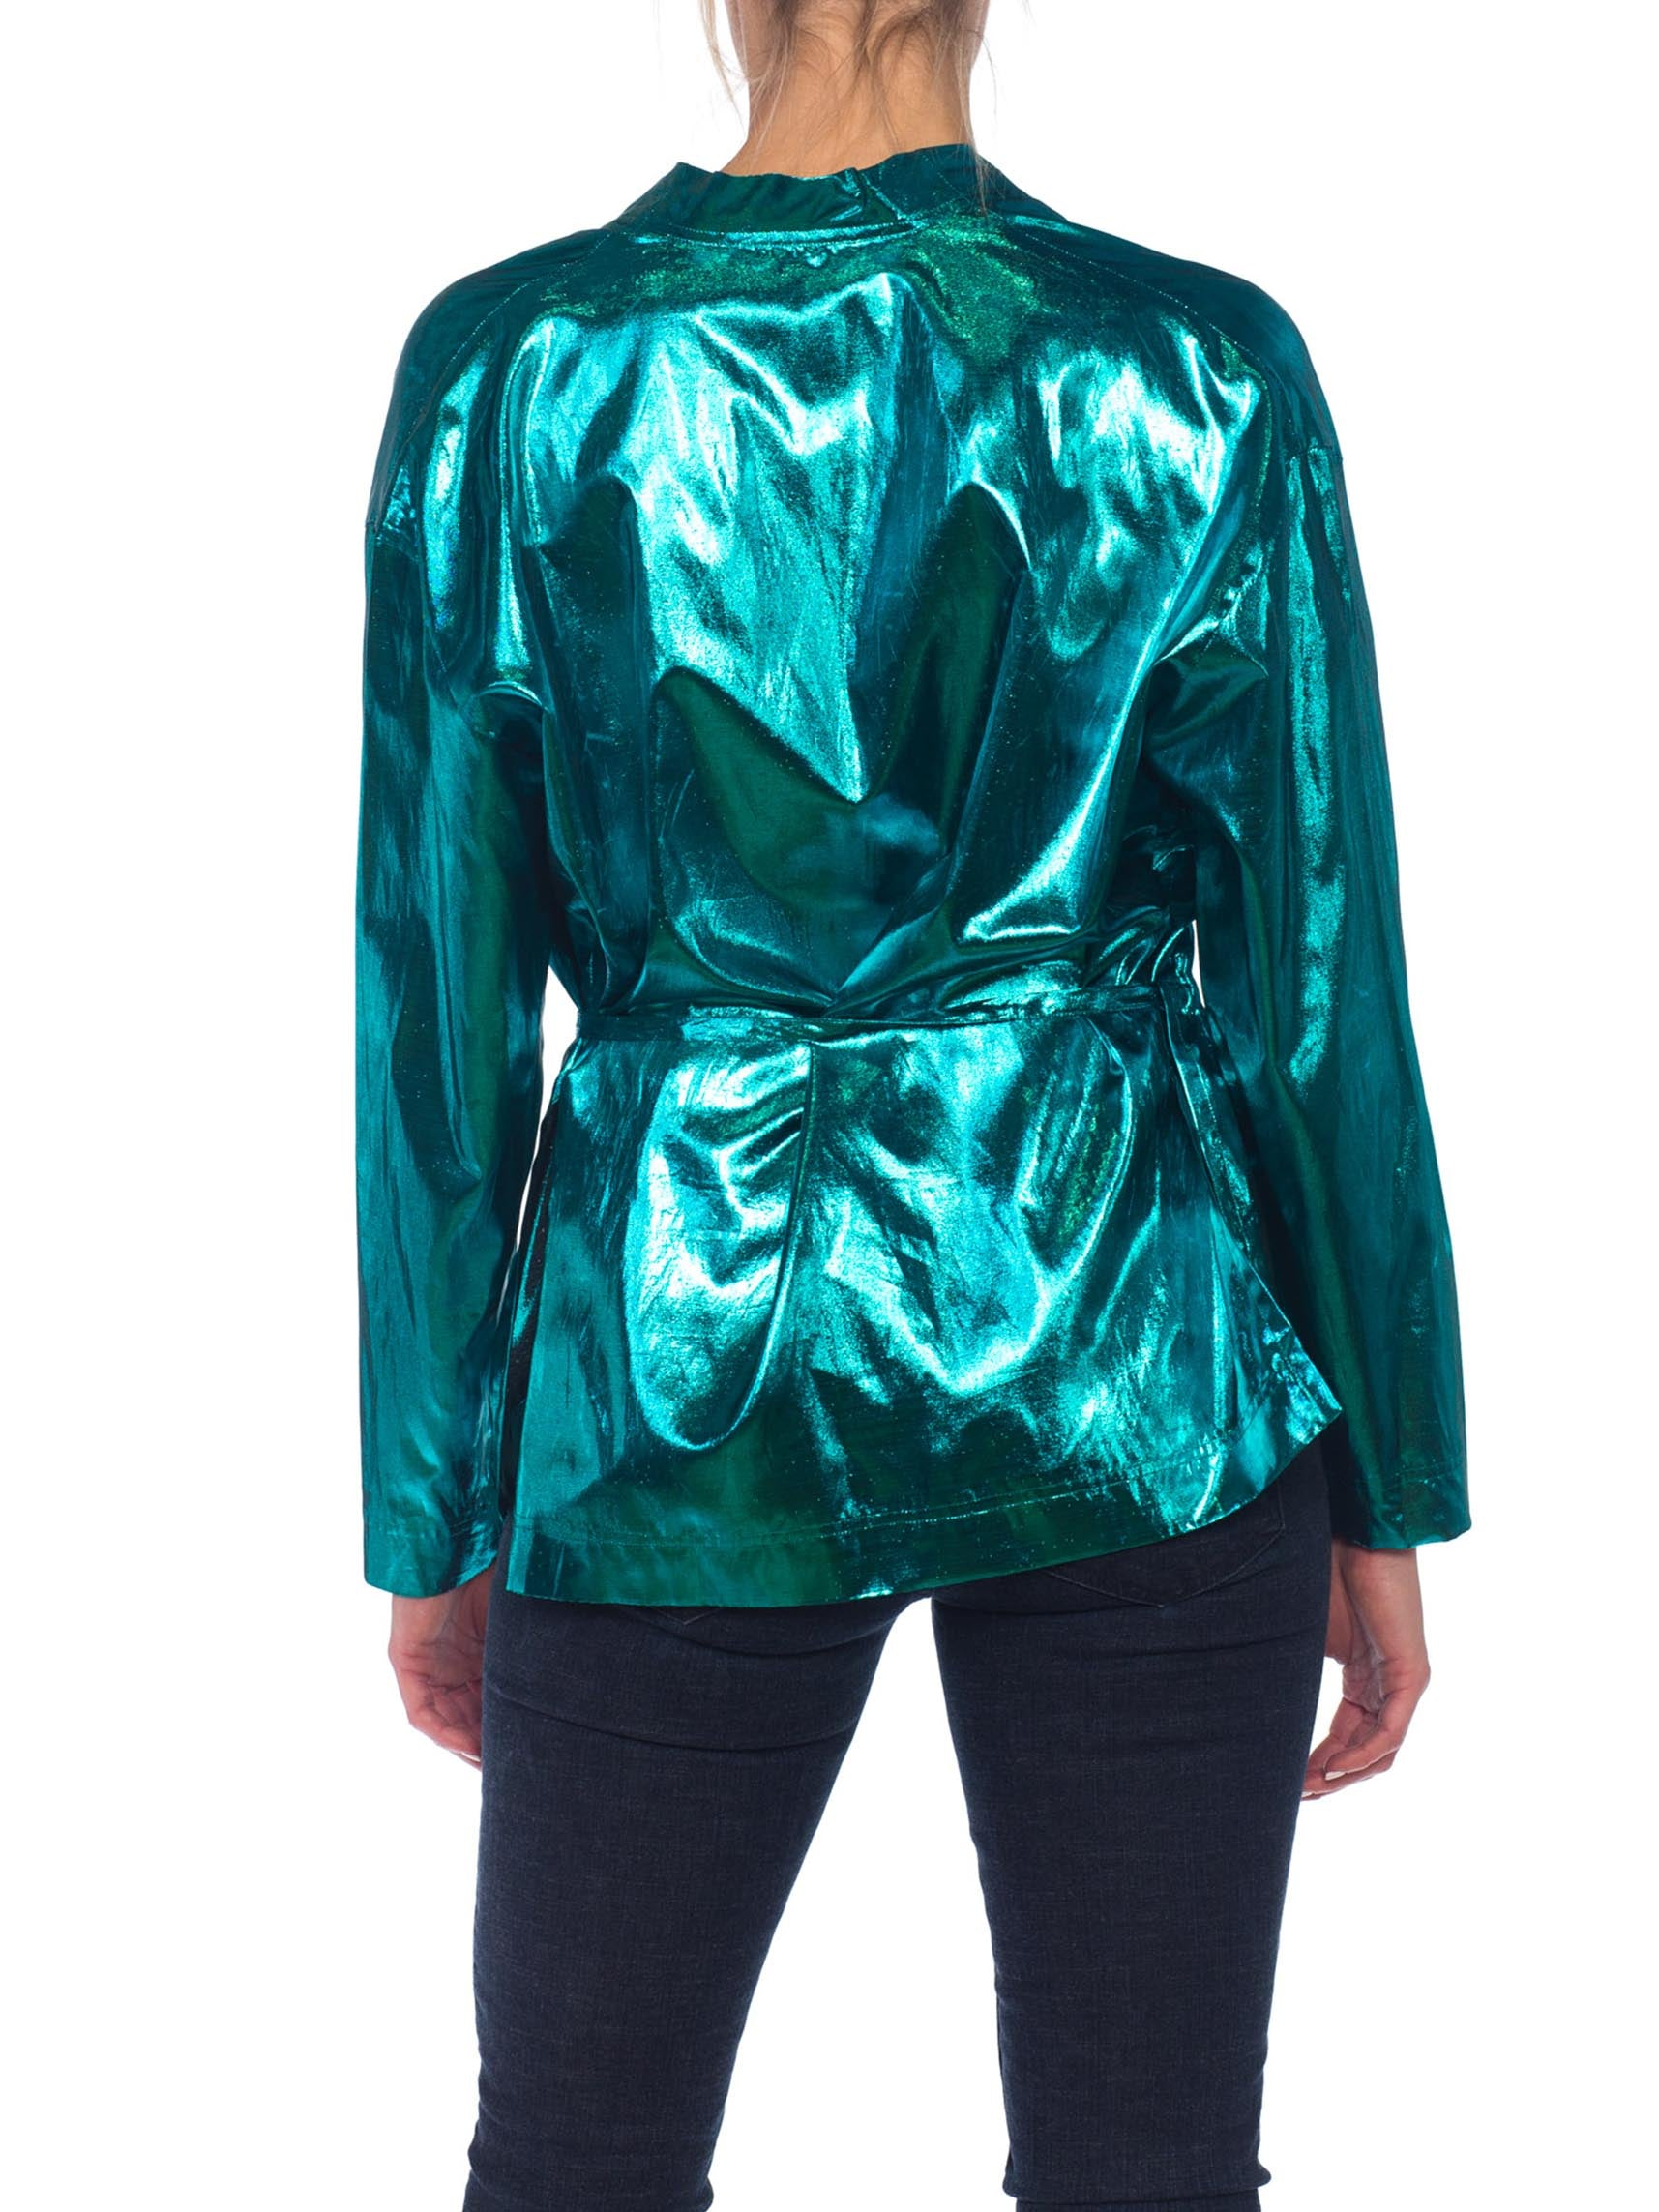 1980S Teal Lamé Gucci Style Disco Wrap Top